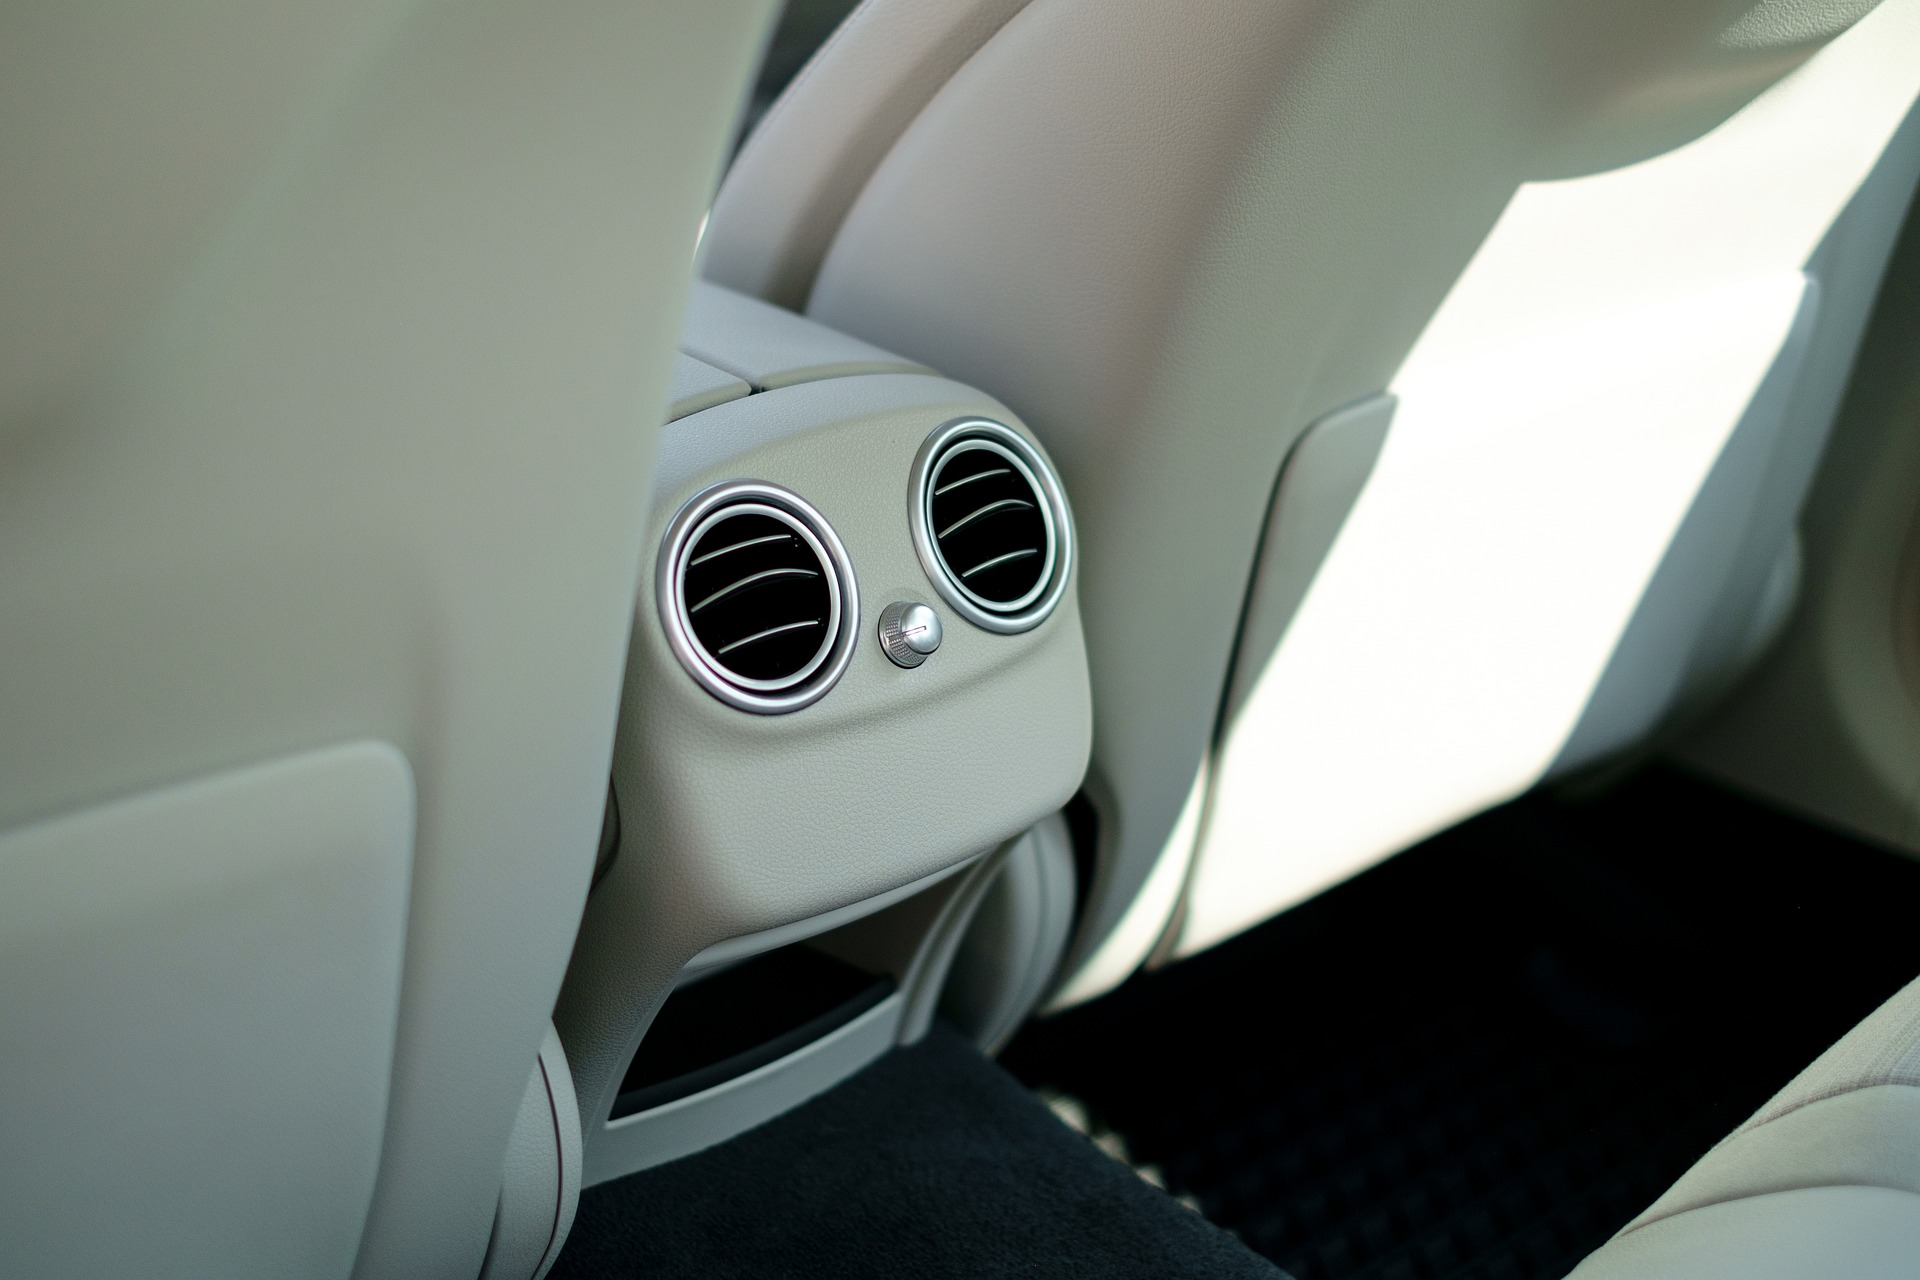 Light Gray Inerior of the Backseat of a Car and Air Conditioning Vents